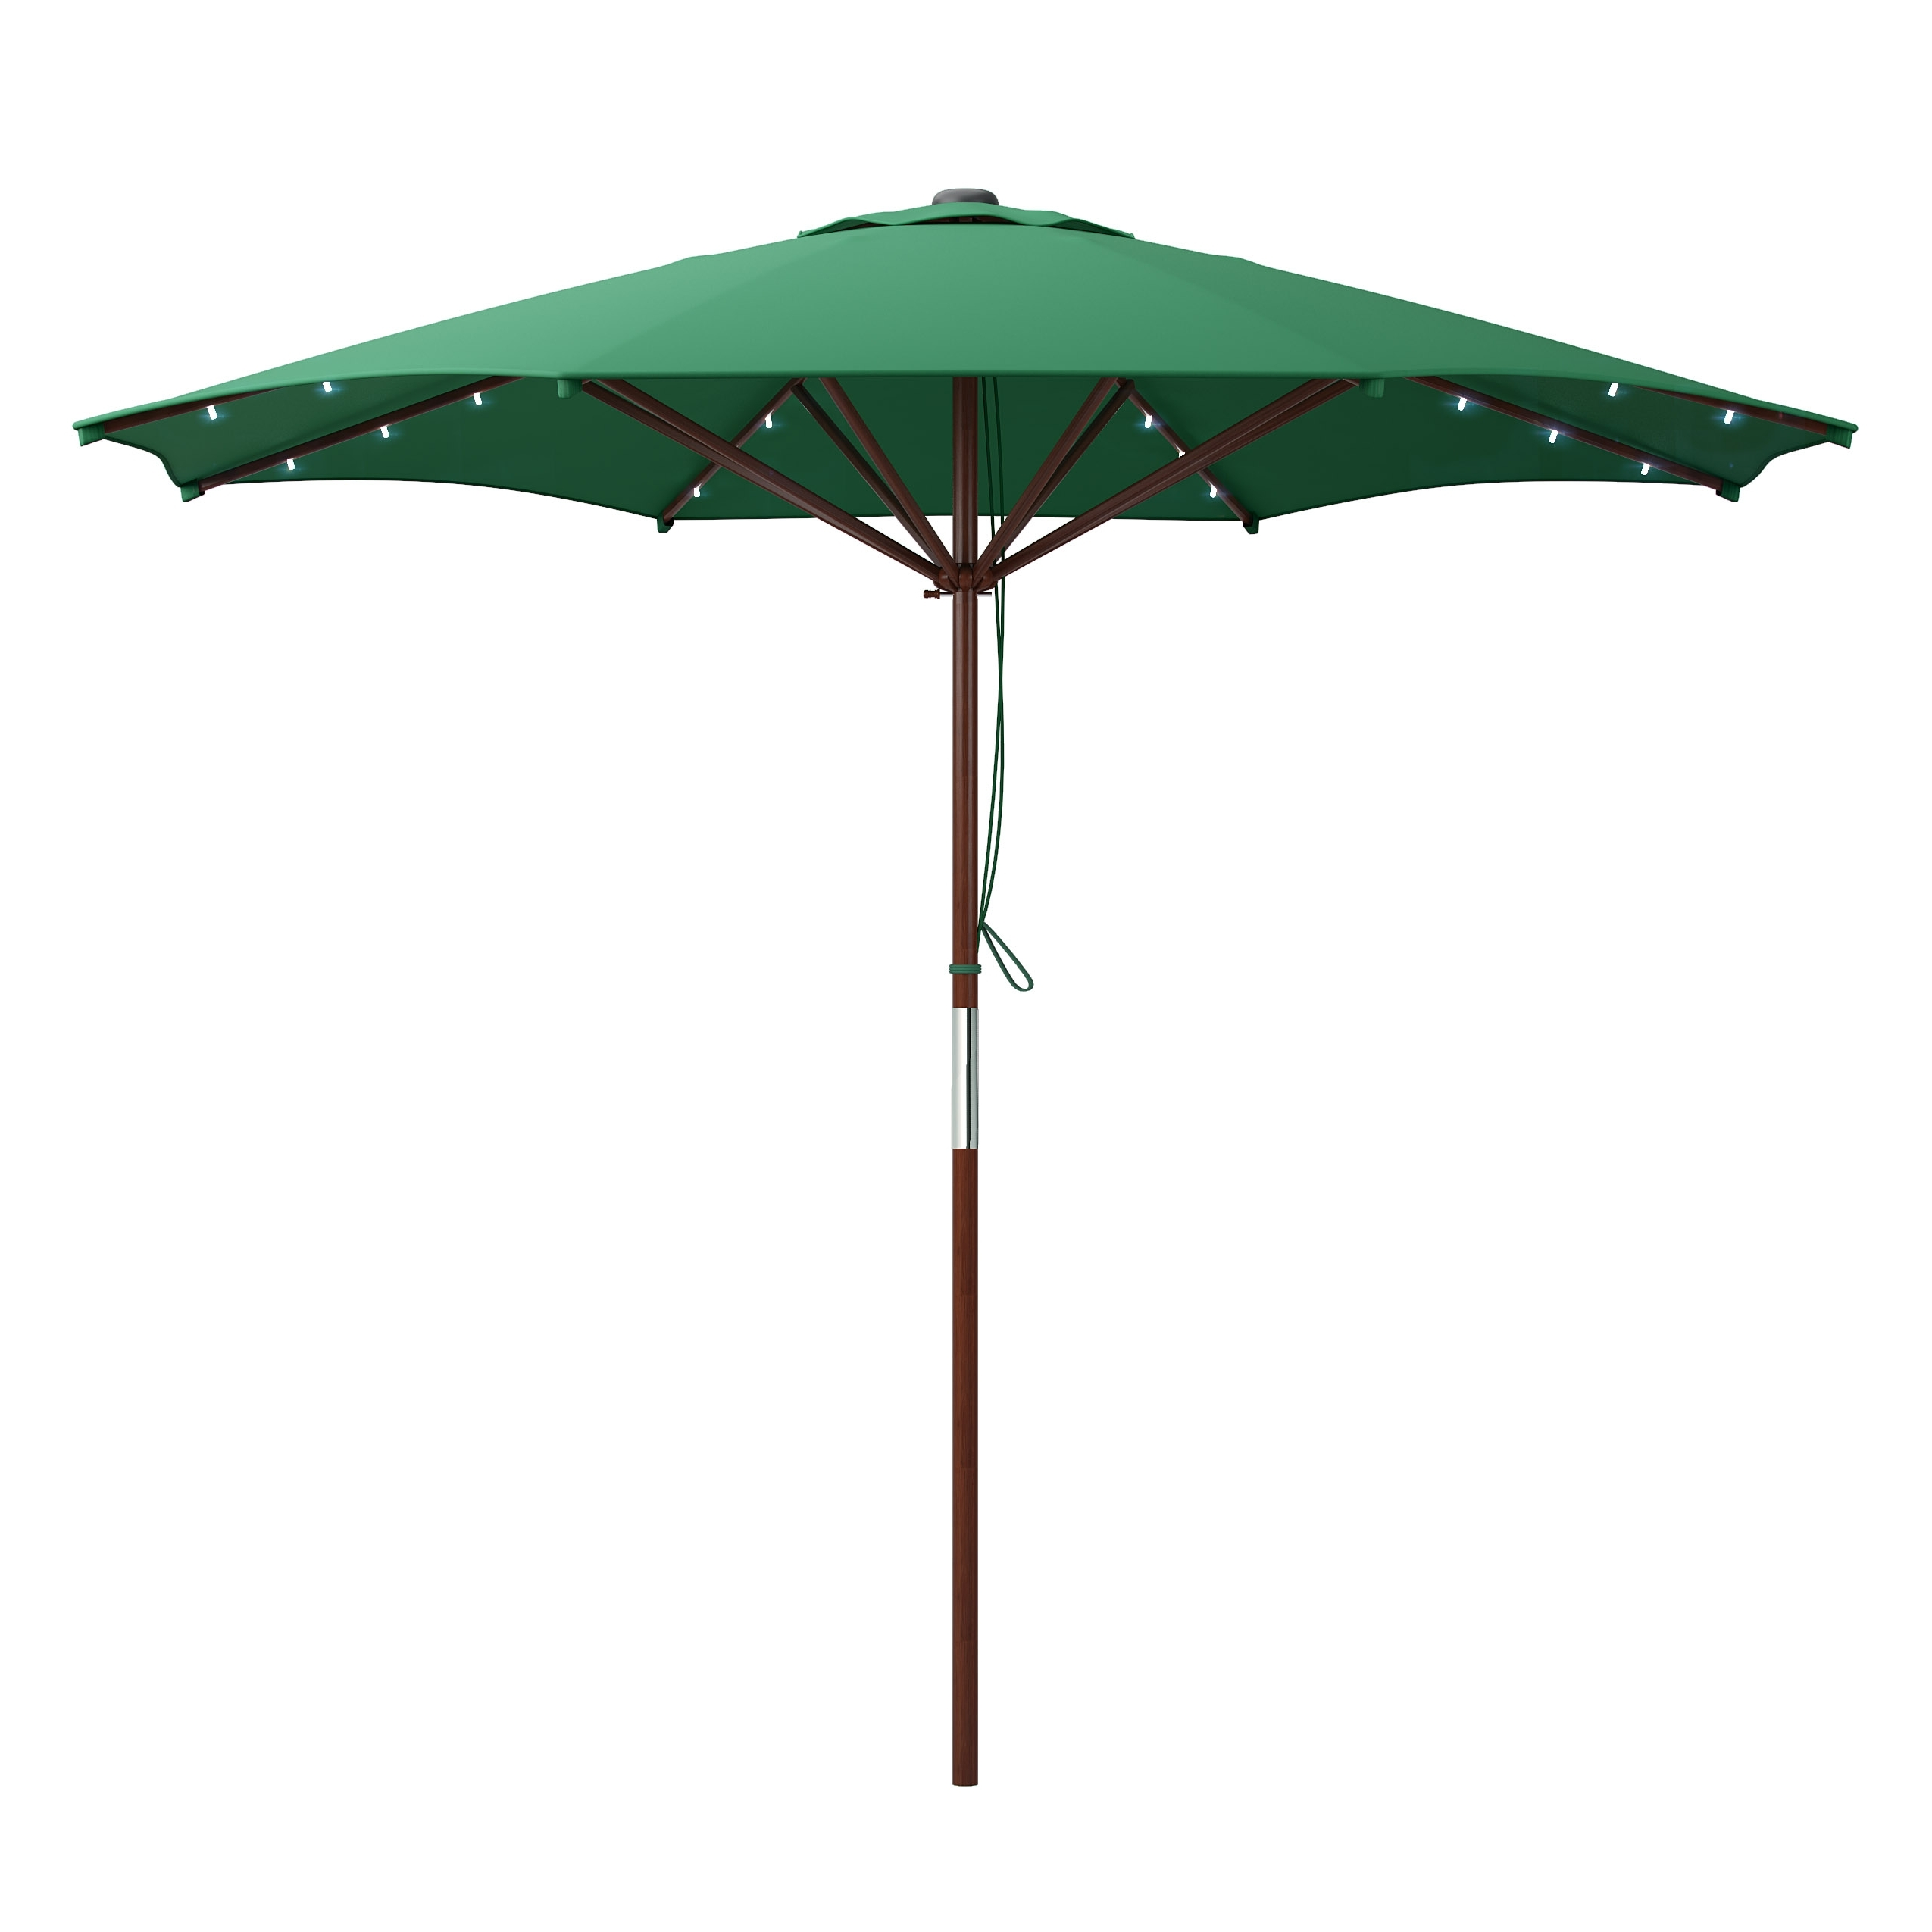 Well Liked Patio Umbrellas With Solar Led Lights Inside Green Patio Umbrella With Solar Power Led Lights (View 18 of 20)